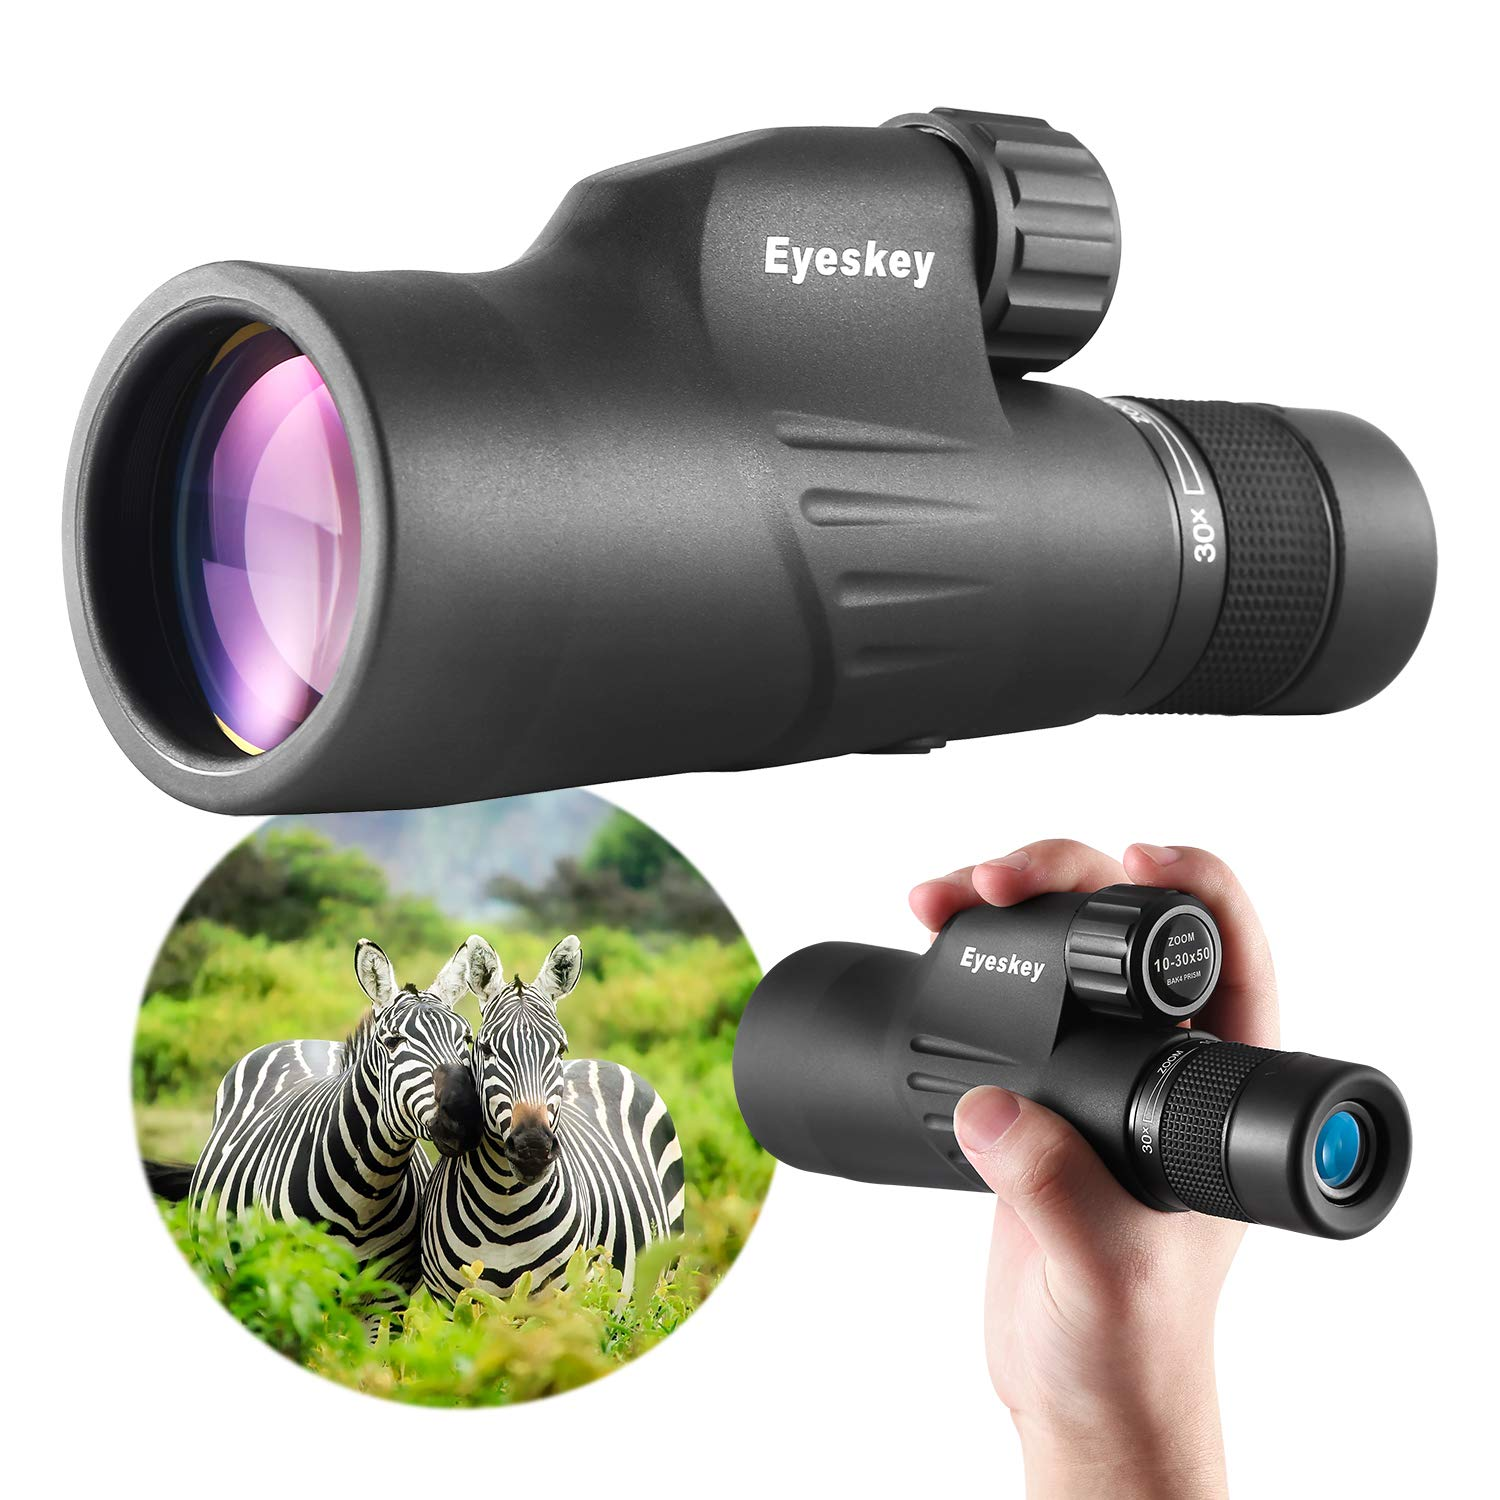 Eyeskey Seeker Pro HD Packet Monocular Compact Size Theater Monoculars for Birding Travelling Optimized Clear Optics Black-10X50 Waterproof and Fog-Proof